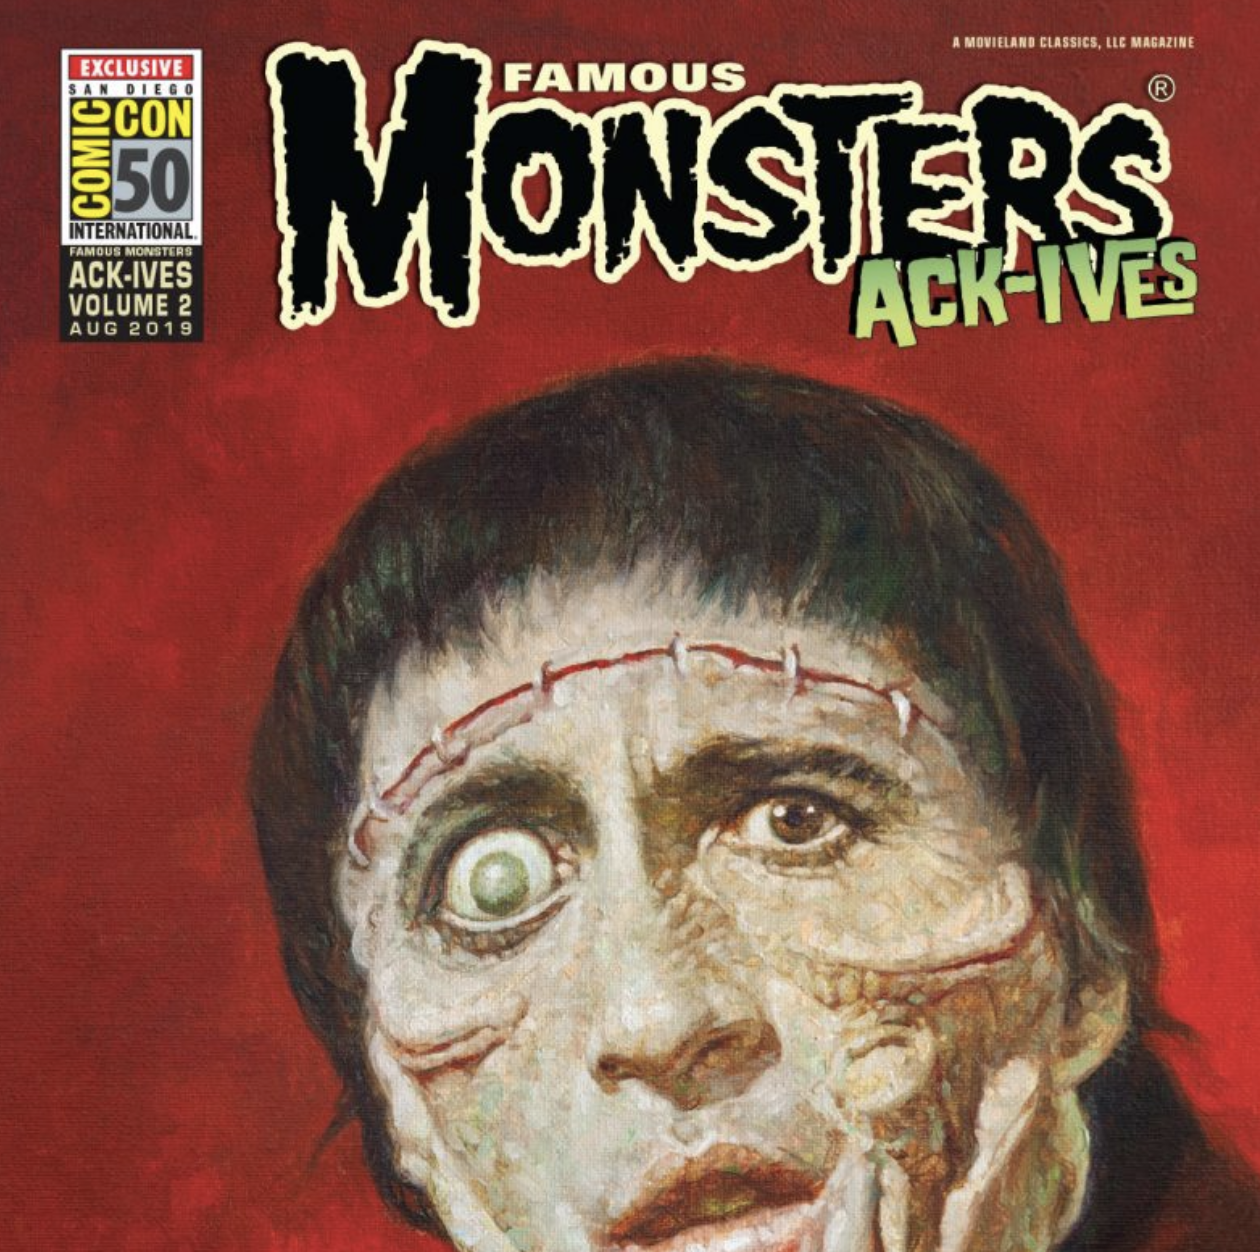 It is a Monster Mash! Famous Monsters of Filmland Bash onto SDCC19 with Panels, Exclusive Prints, T's and Prizes!